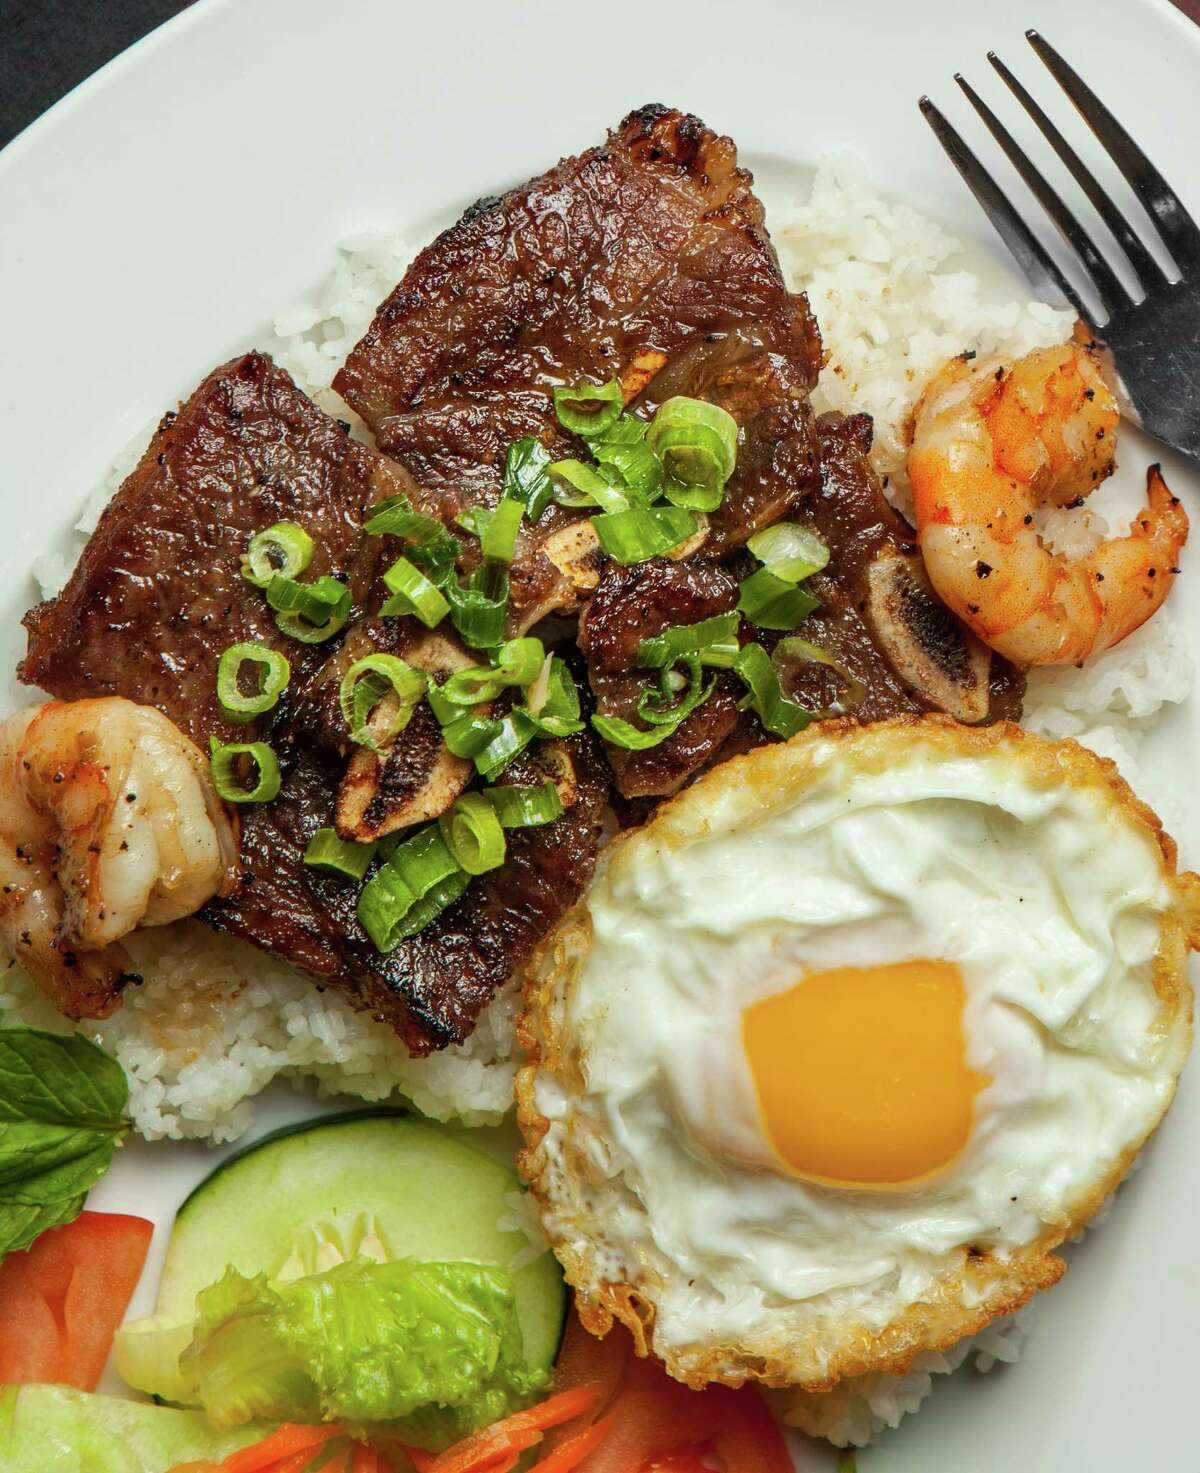 Interior of Huynh Restaurant Authentic Vietnamese Cuisine's Com Suon Bo Dai Han, chargrilled beef, short ribs served with shrimp, fried egg and crushed rice. Photographed, Monday, August 4, 2014, in Houston. ( Nick de la Torre )